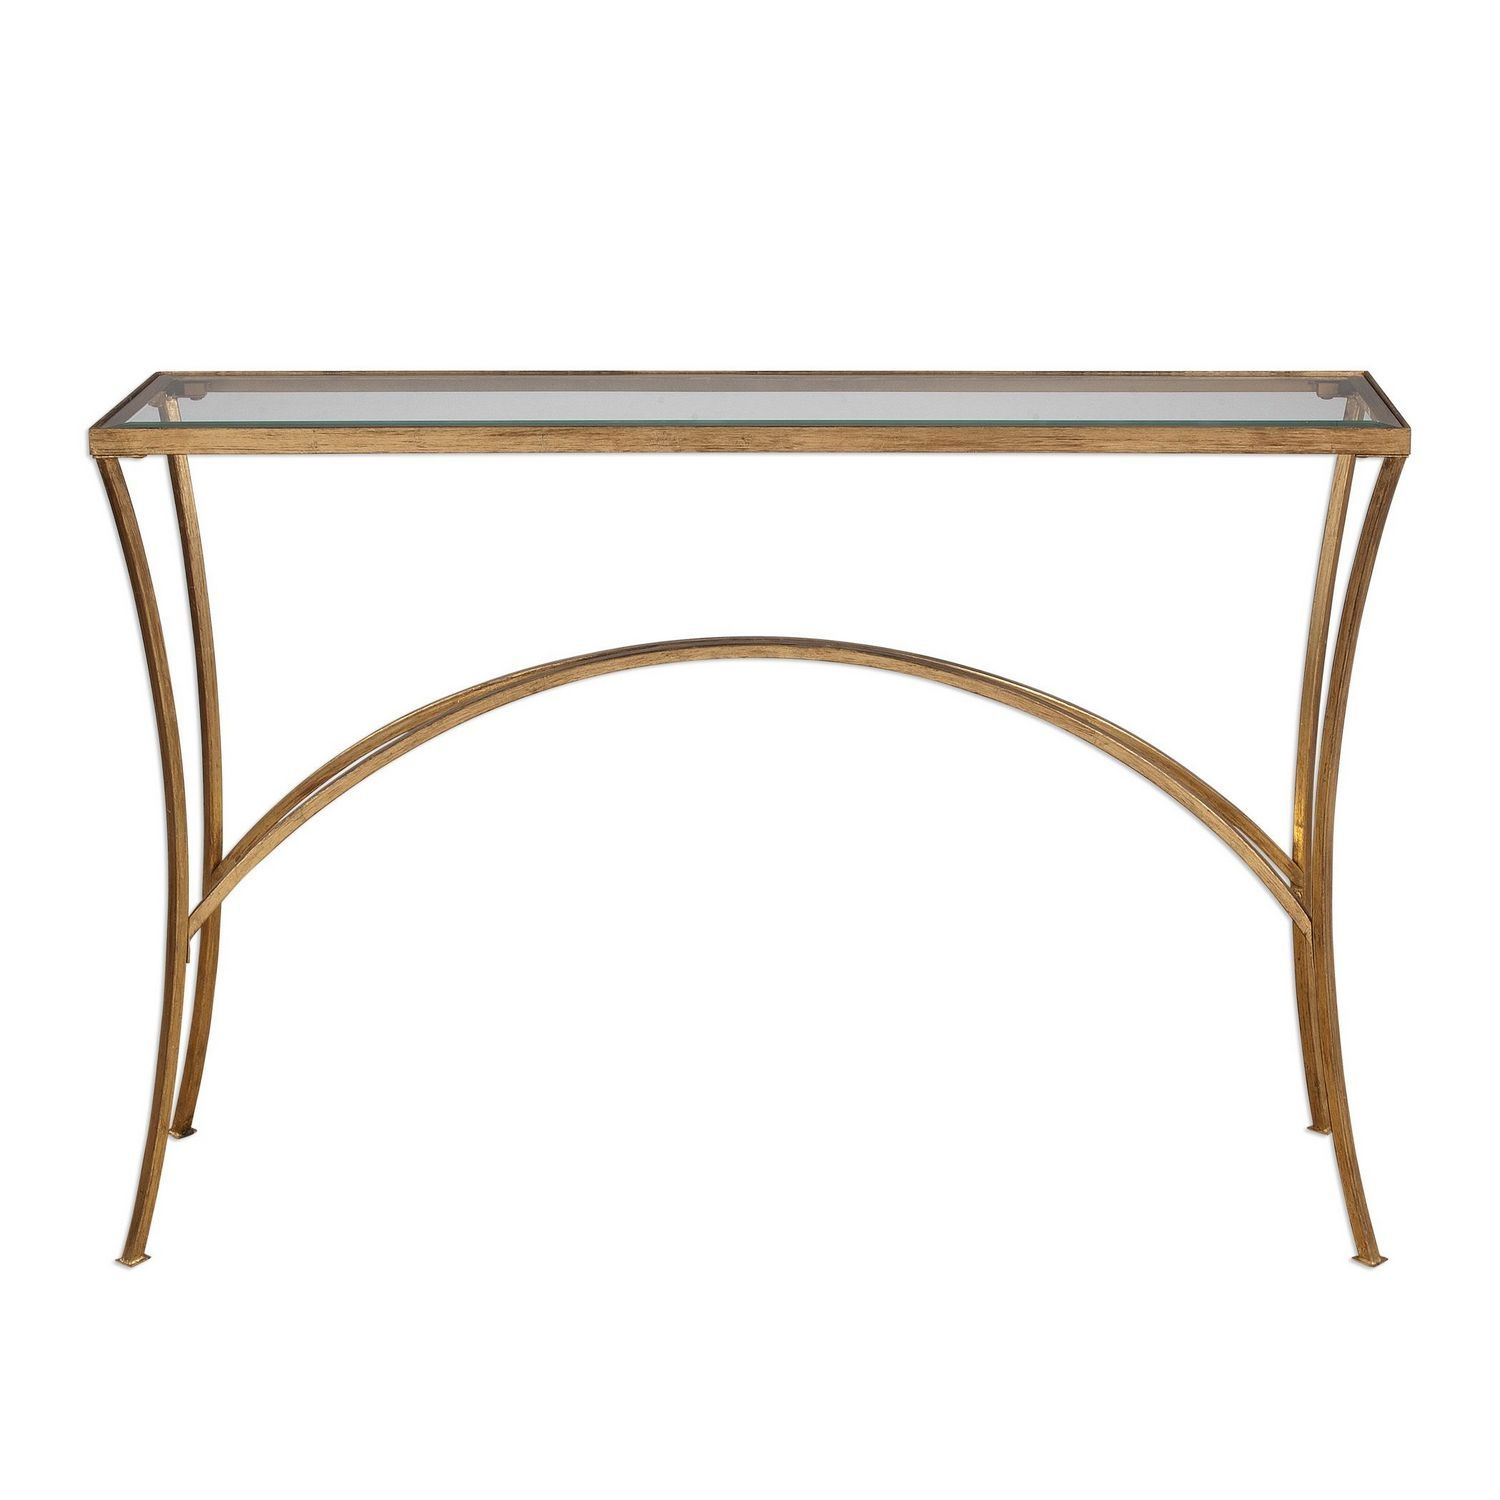 Uttermost Alayna Console Table - Gold